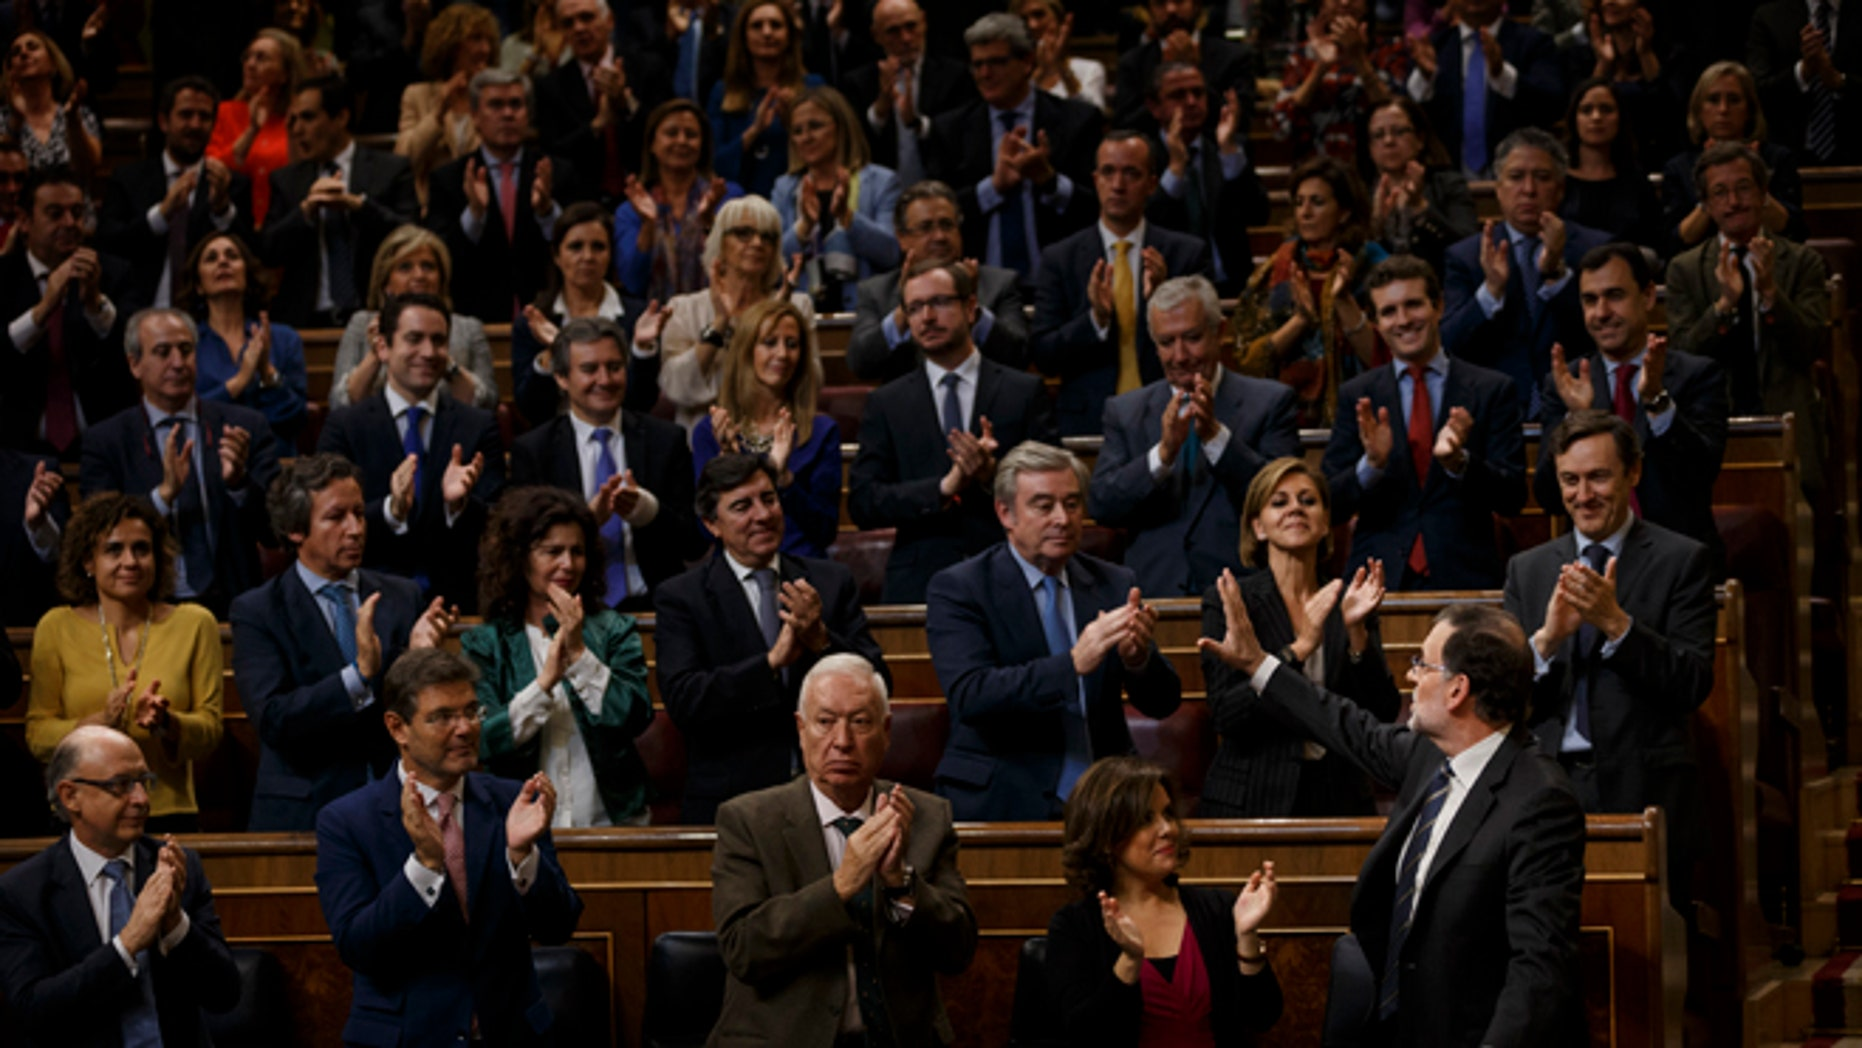 Spain acting conservative Prime Minister and Popular Party leader Mariano Rajoy, right, is greeted by his party members after speaking at the investiture debate, a day before a first confidence vote in Madrid, Spain, Wednesday, Oct. 26, 2016.  The Spanish Parliament has started an investiture debate that is widely expected to end in the conservative Popular Party taking power later this week, ending 10 months of political deadlock during which a caretaker government has run the country. (AP Photo/Daniel Ochoa de Olza)